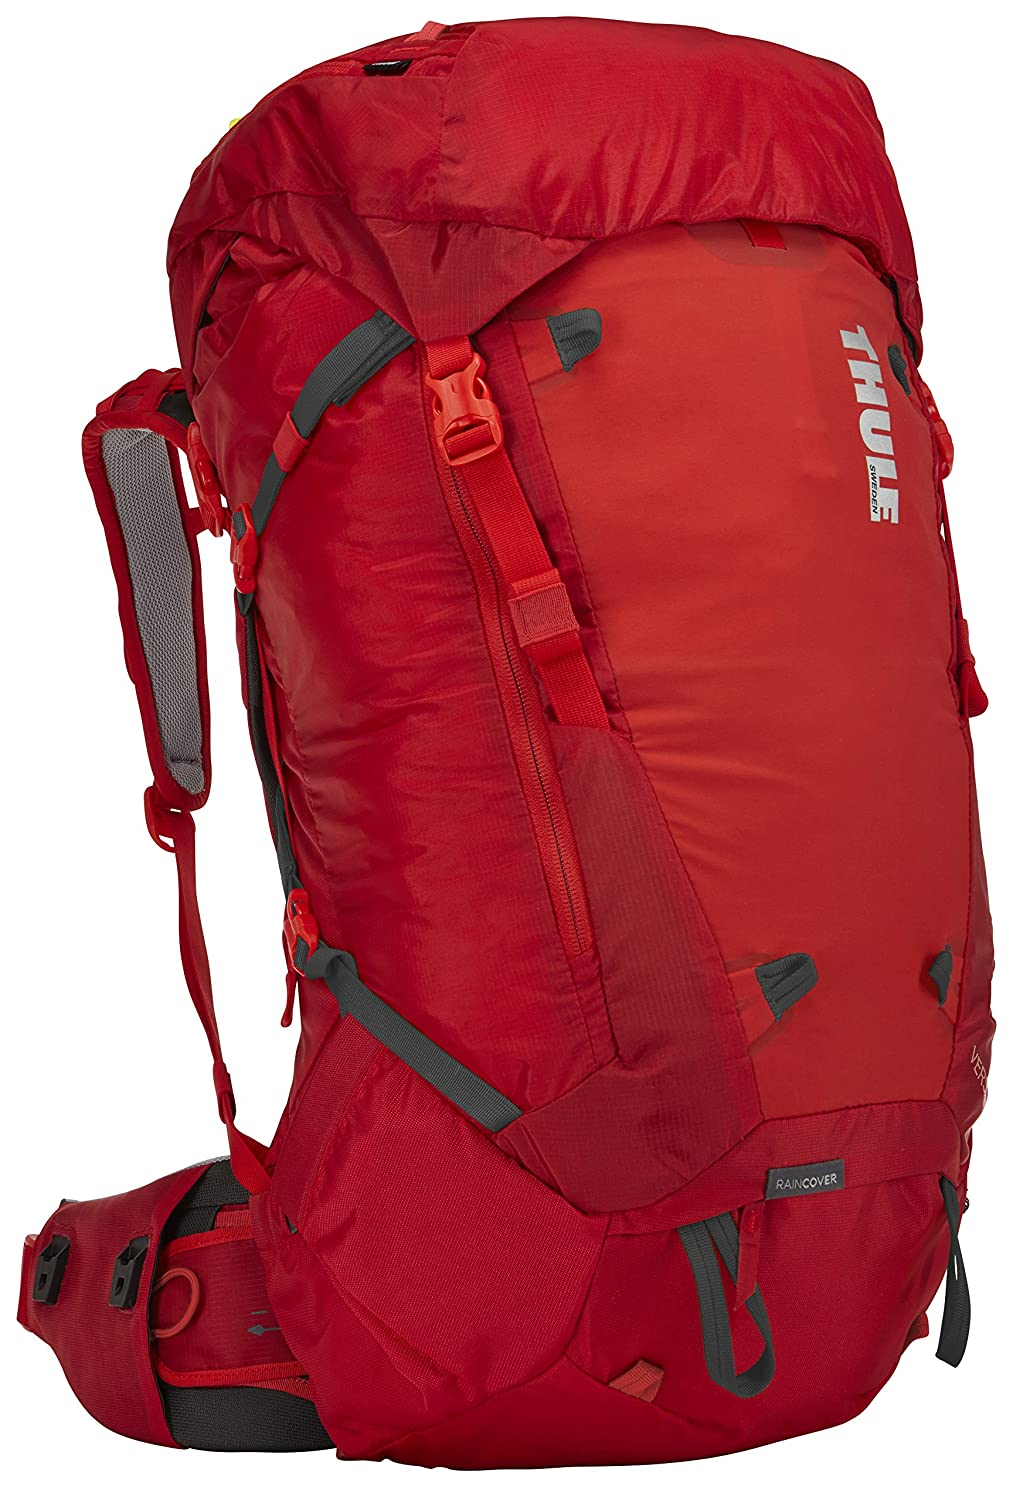 Thule Versant 50L Men's Backpacking Pack - Bing